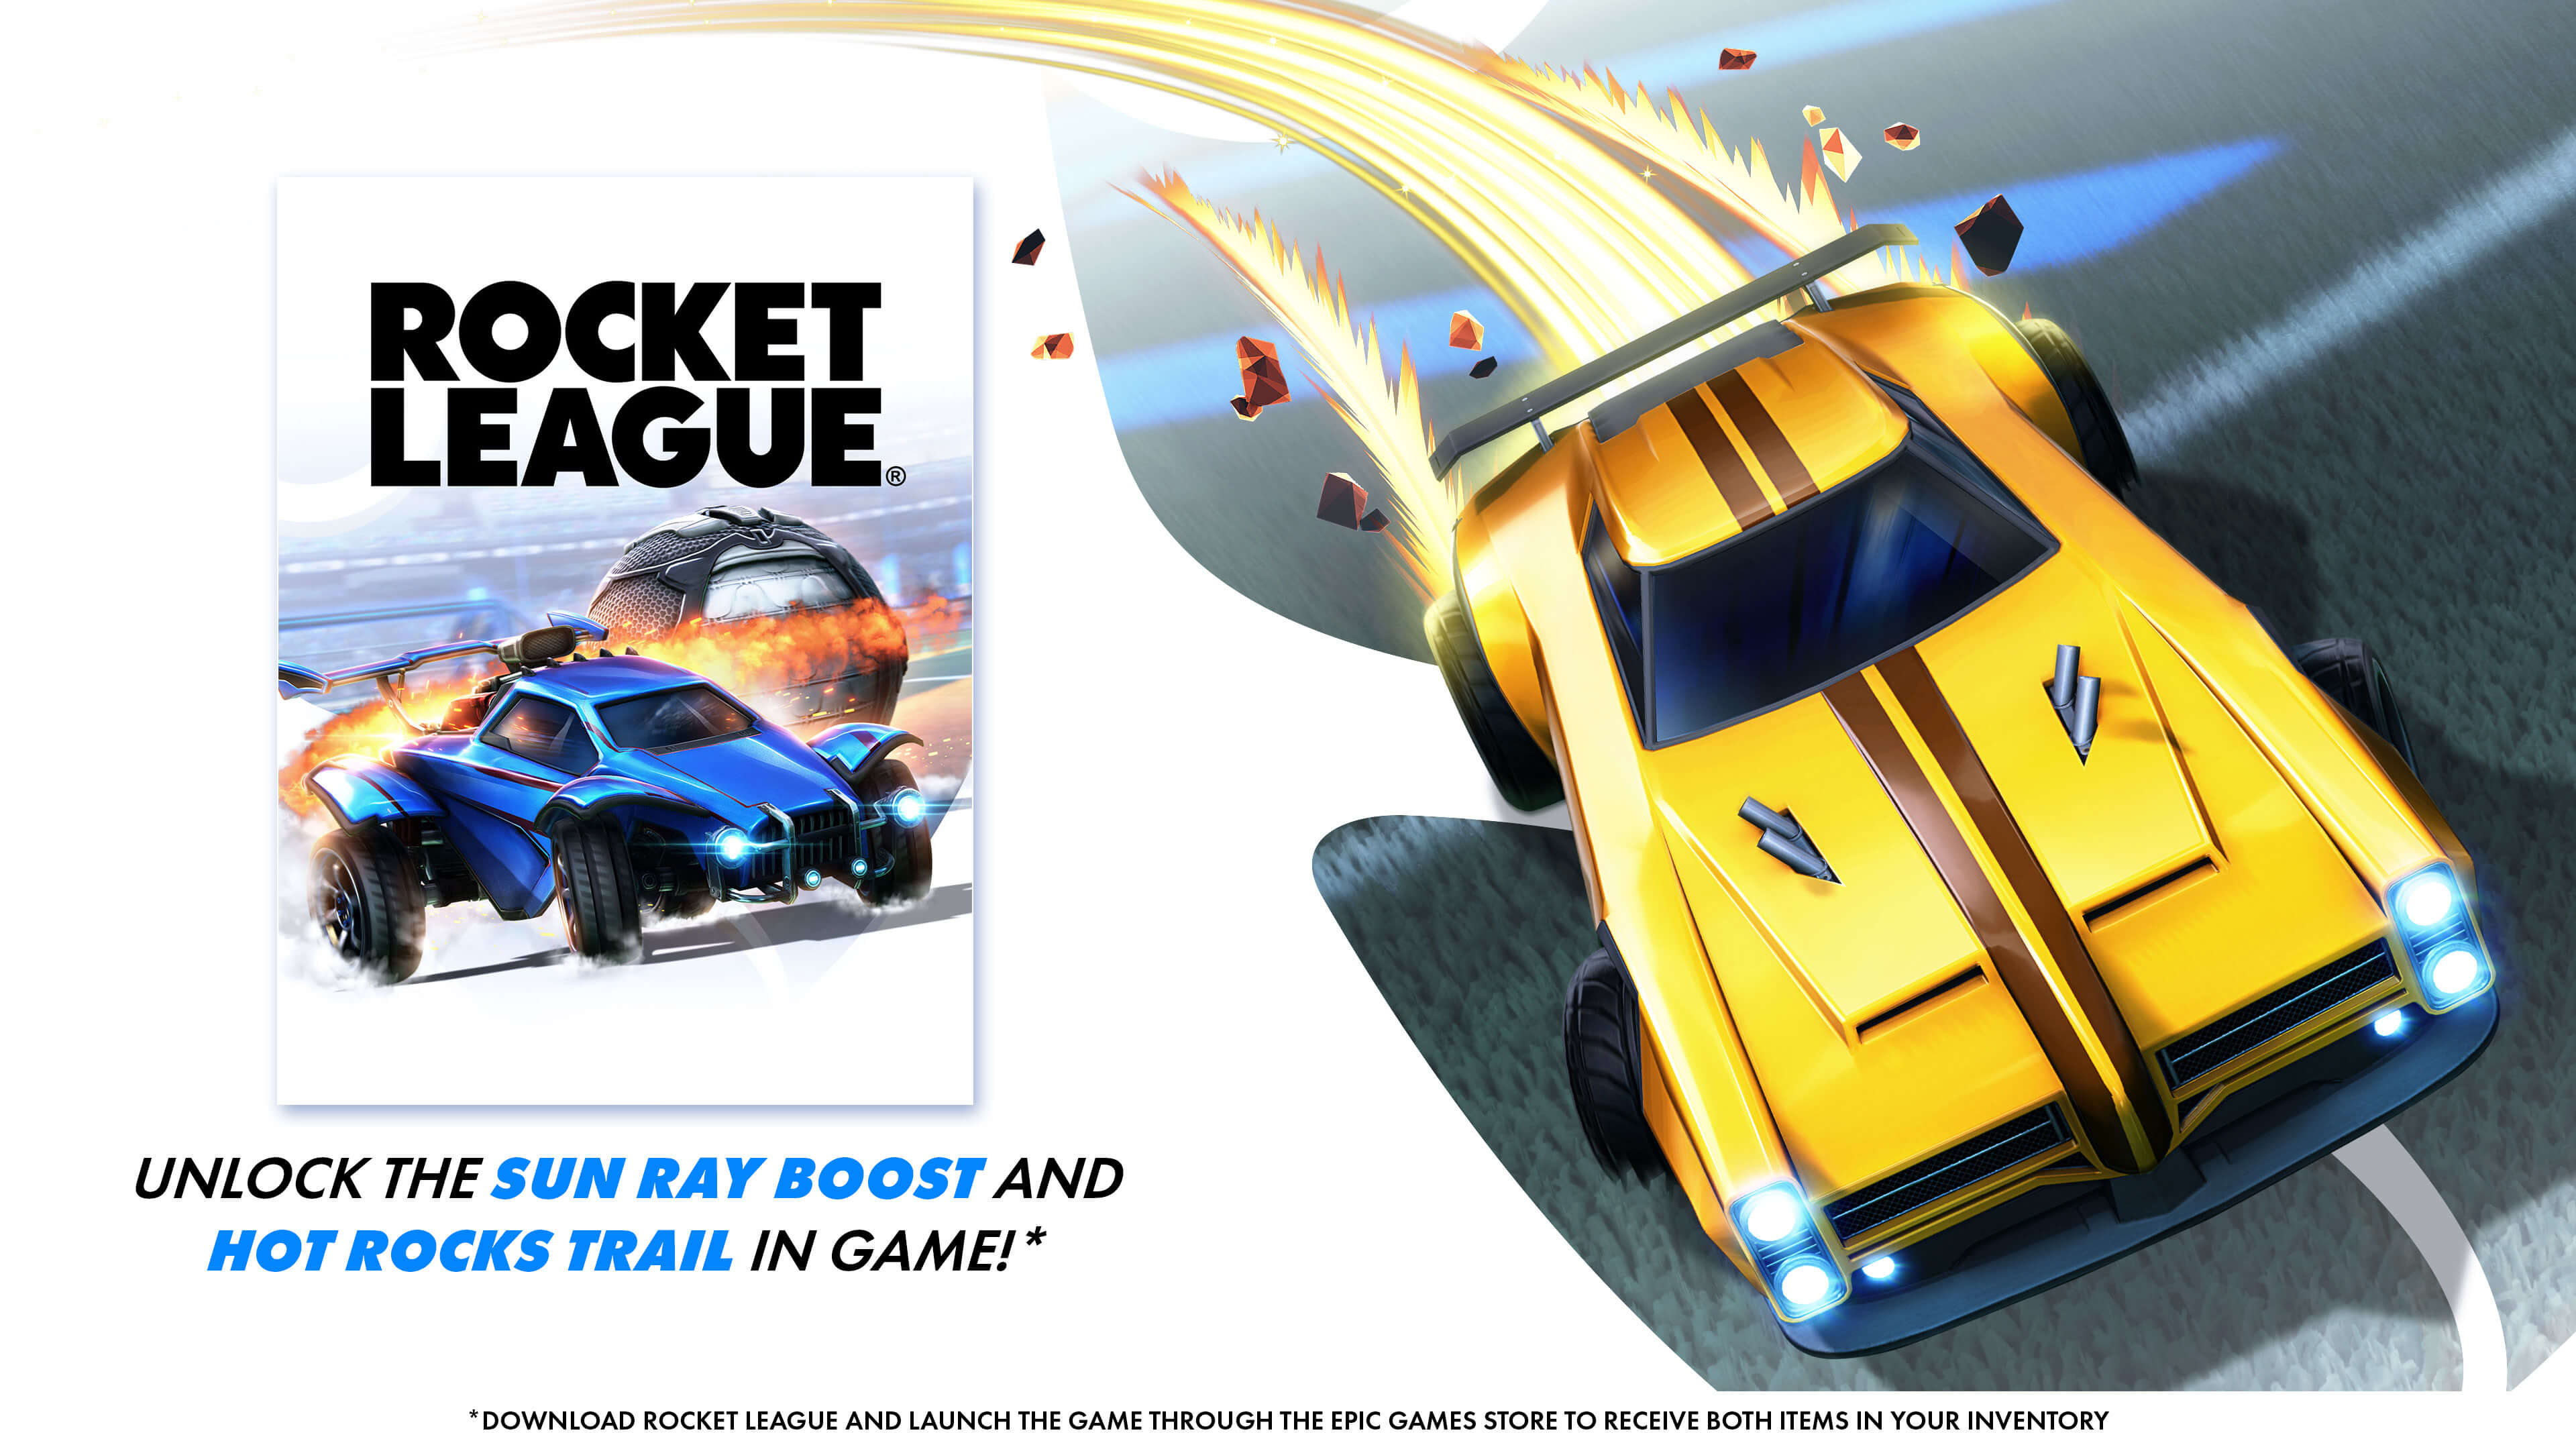 Rocket League Sun Ray Boost Hot Rocks Trail